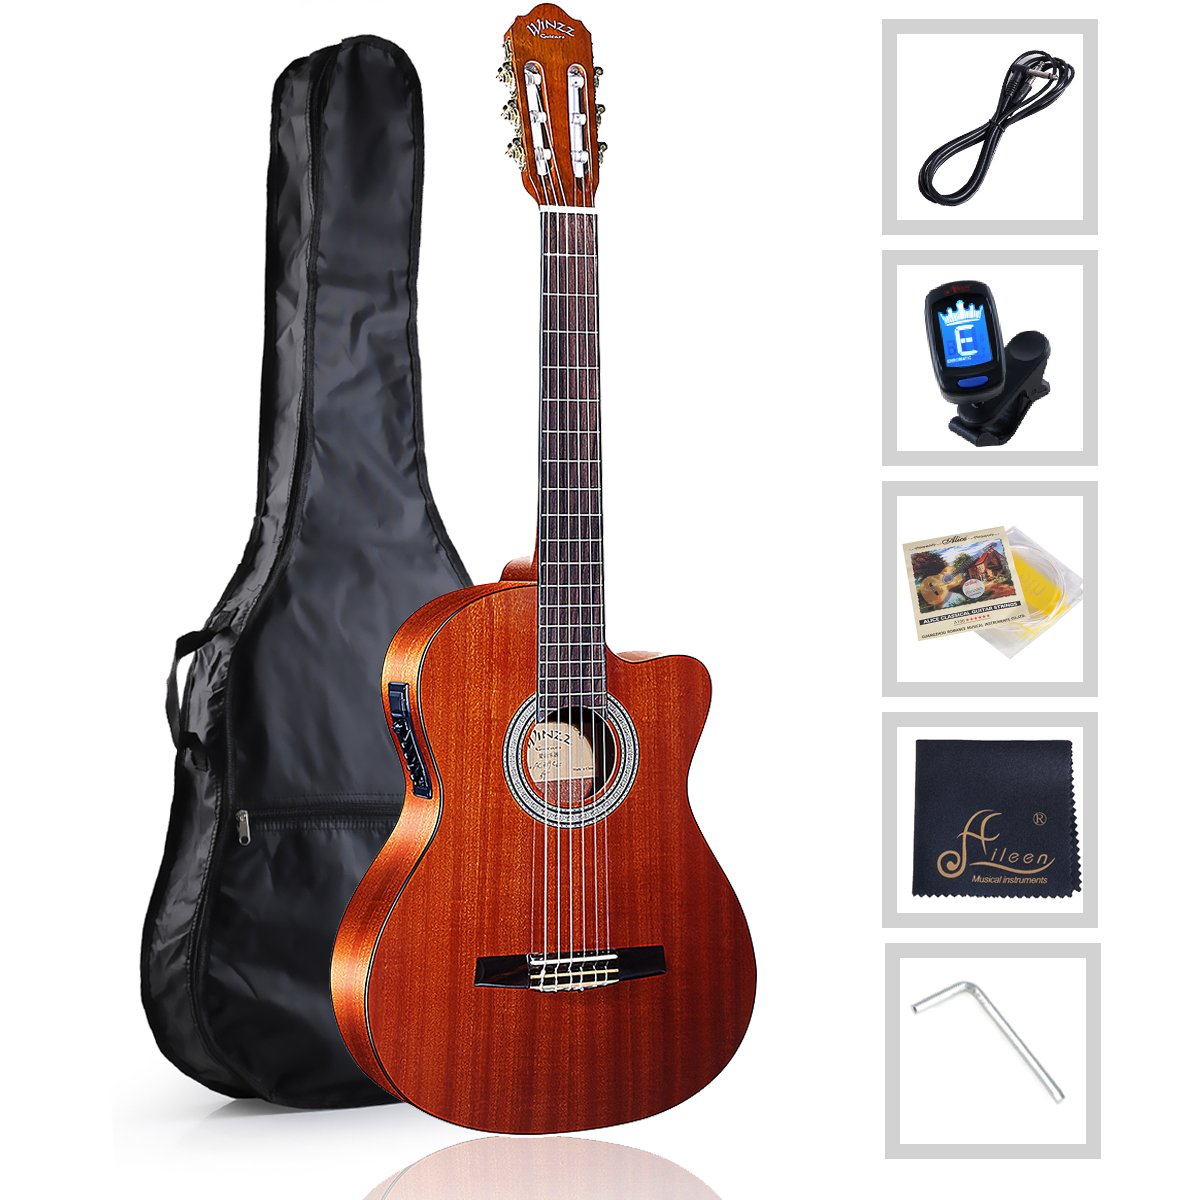 WINZZ Nylon-string Classical Guitar 39'' Electric Build-in Pickup Cutaway with Nylon Strings, Bag, Cleaning Cloth, Tuner and Cable